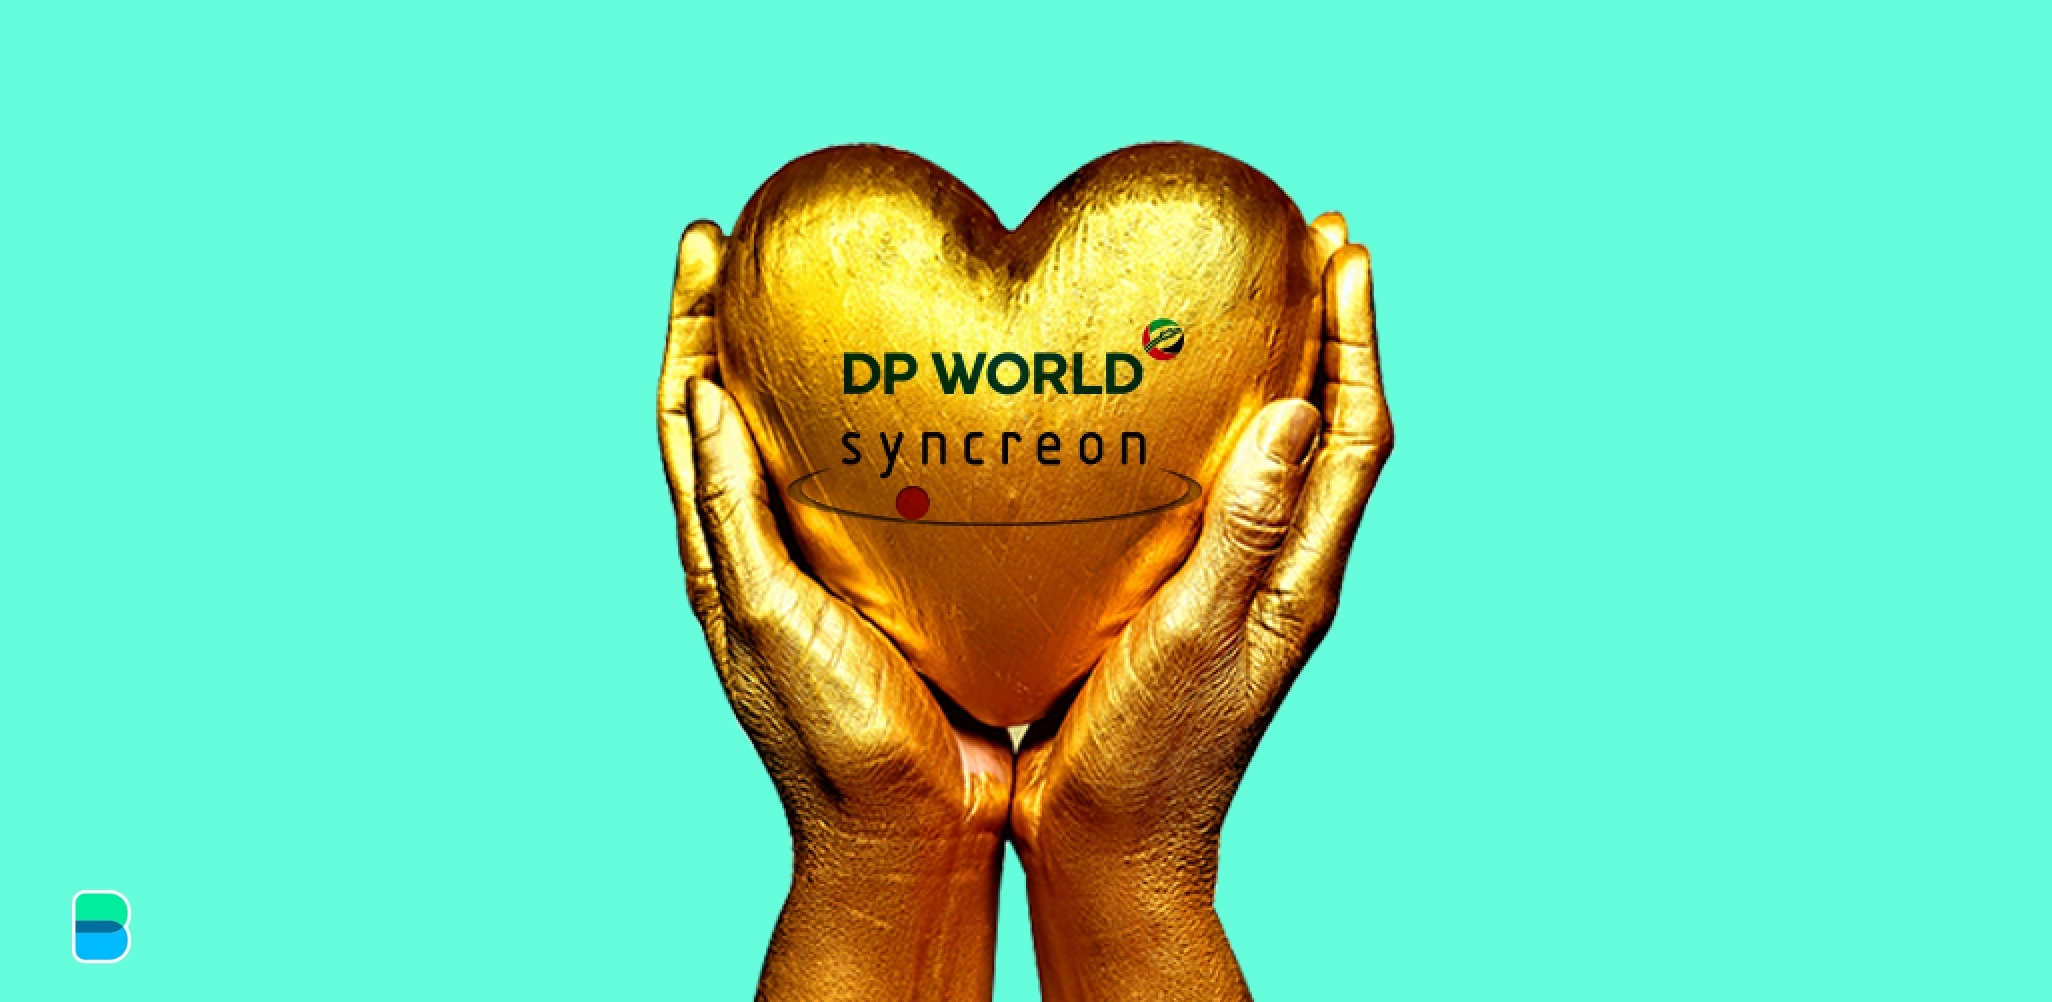 In Syncreon DP World trusts